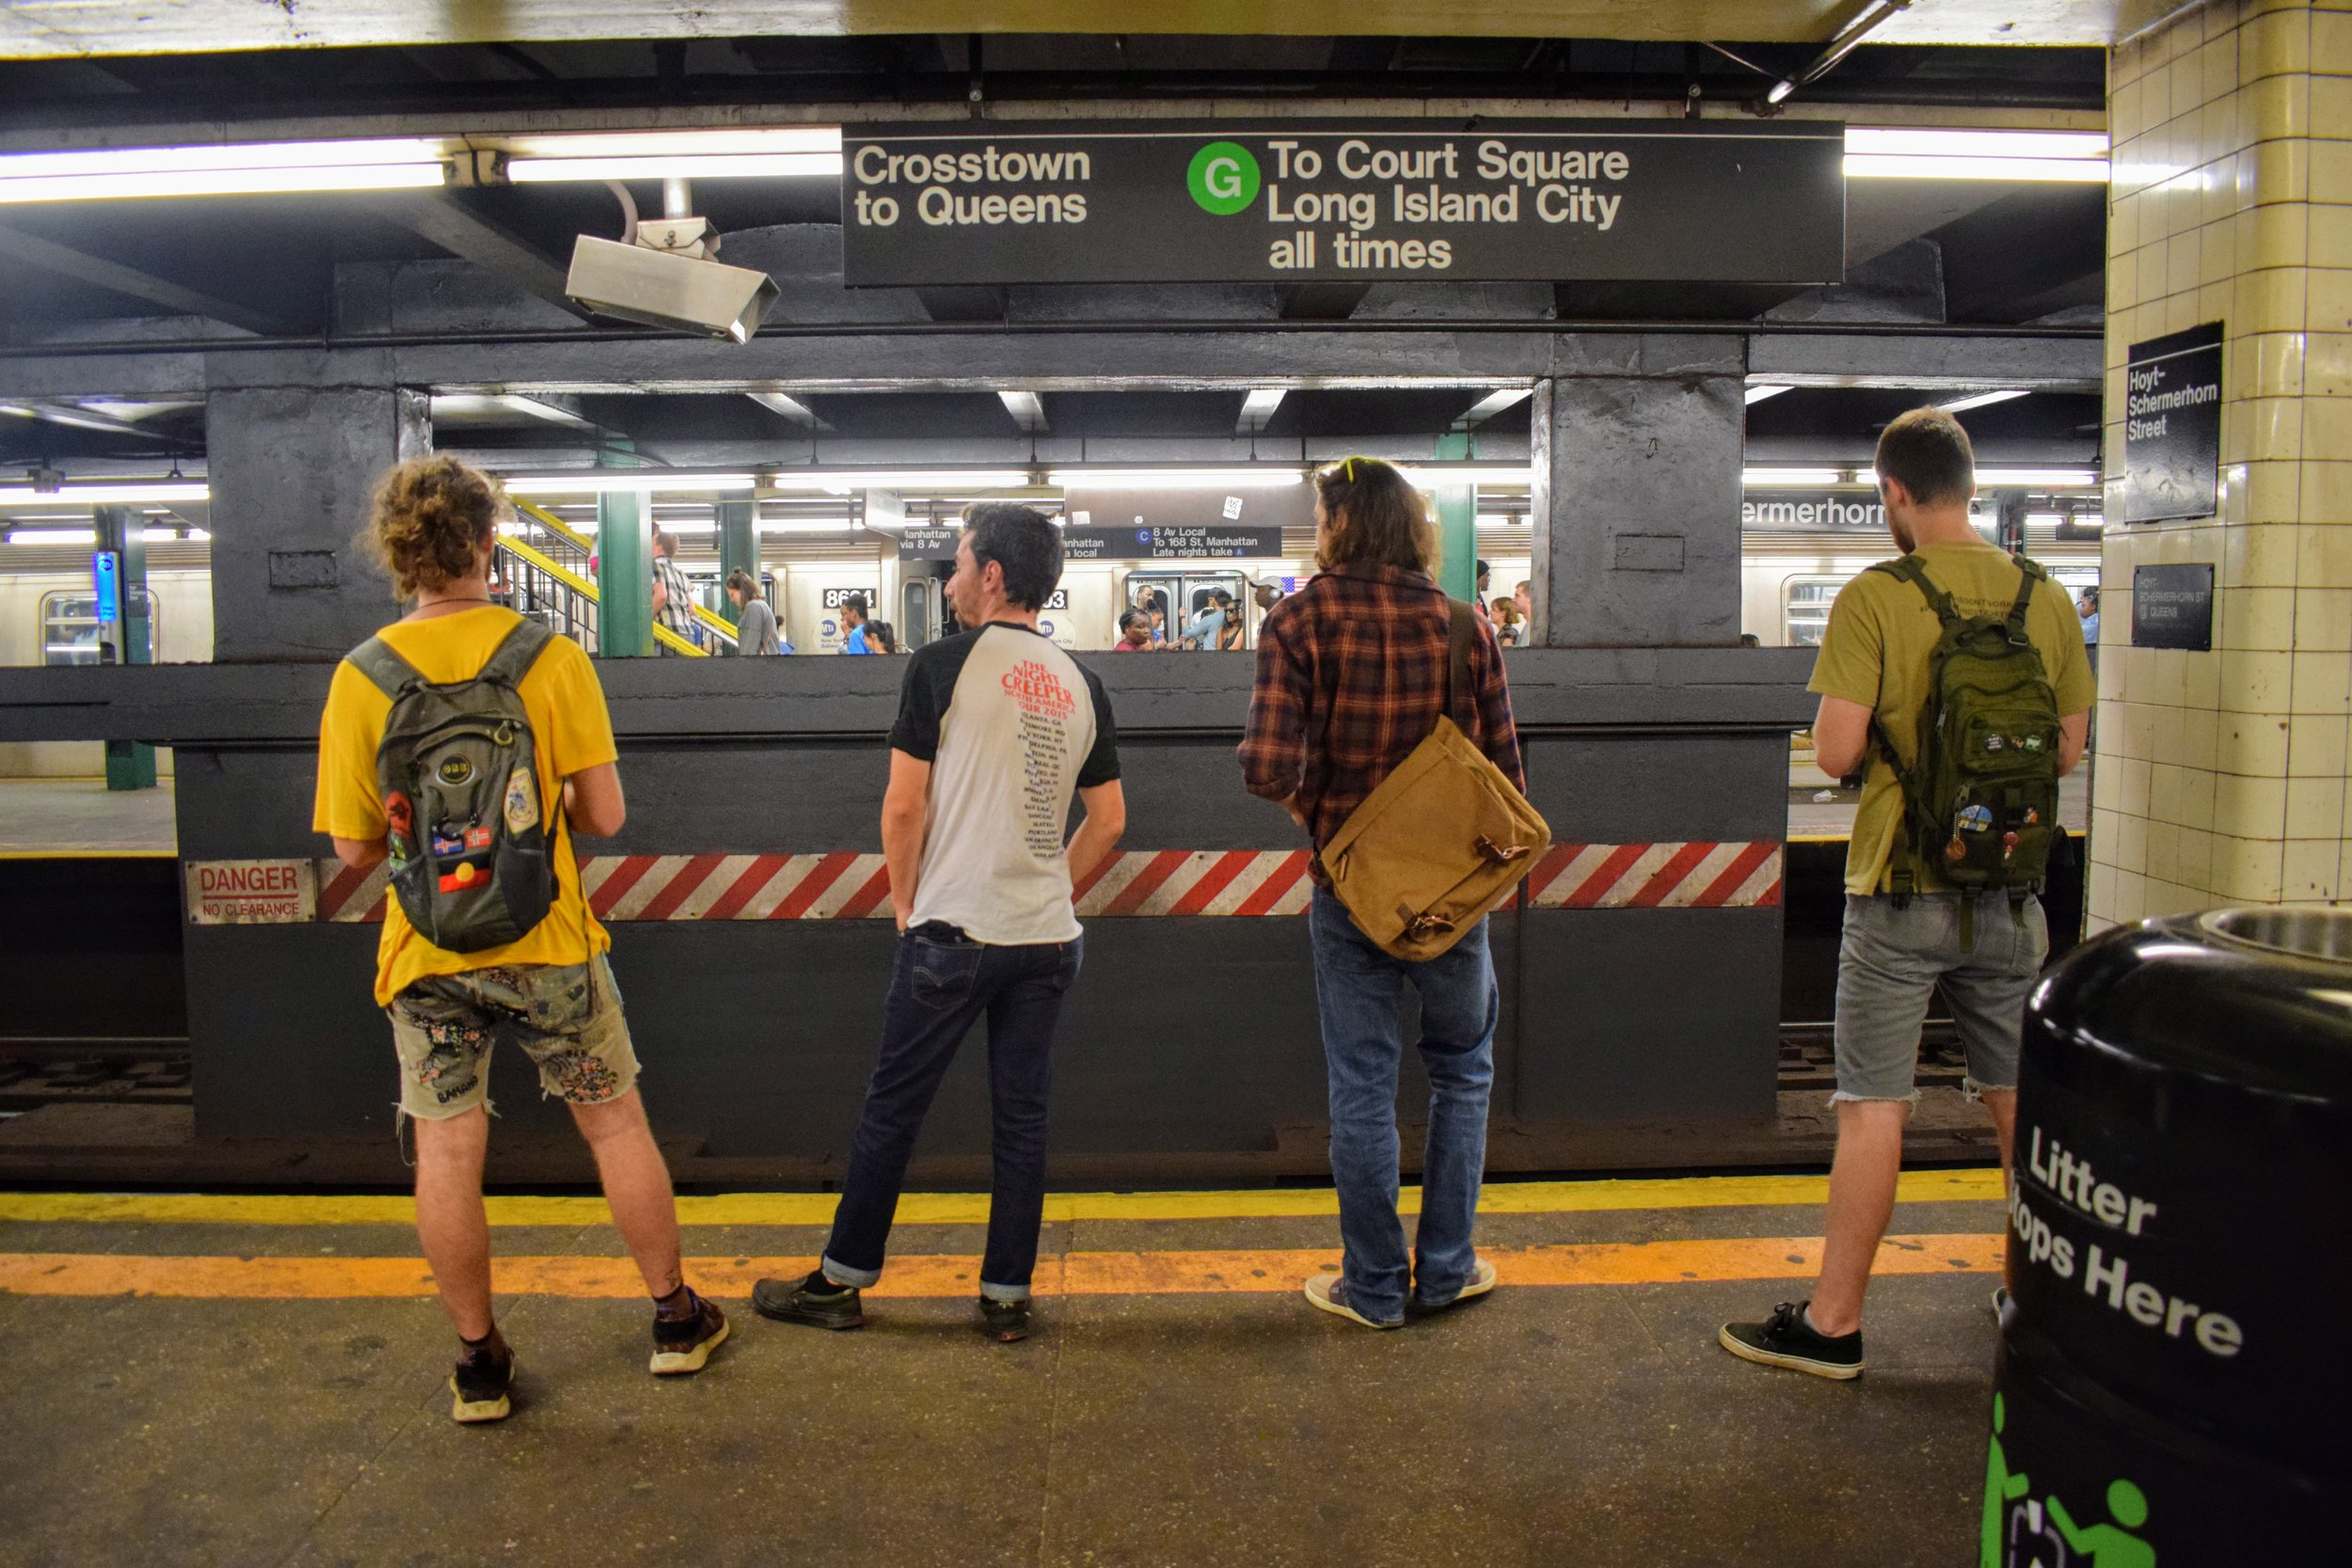 Our friends await the New York Subway's G Line.